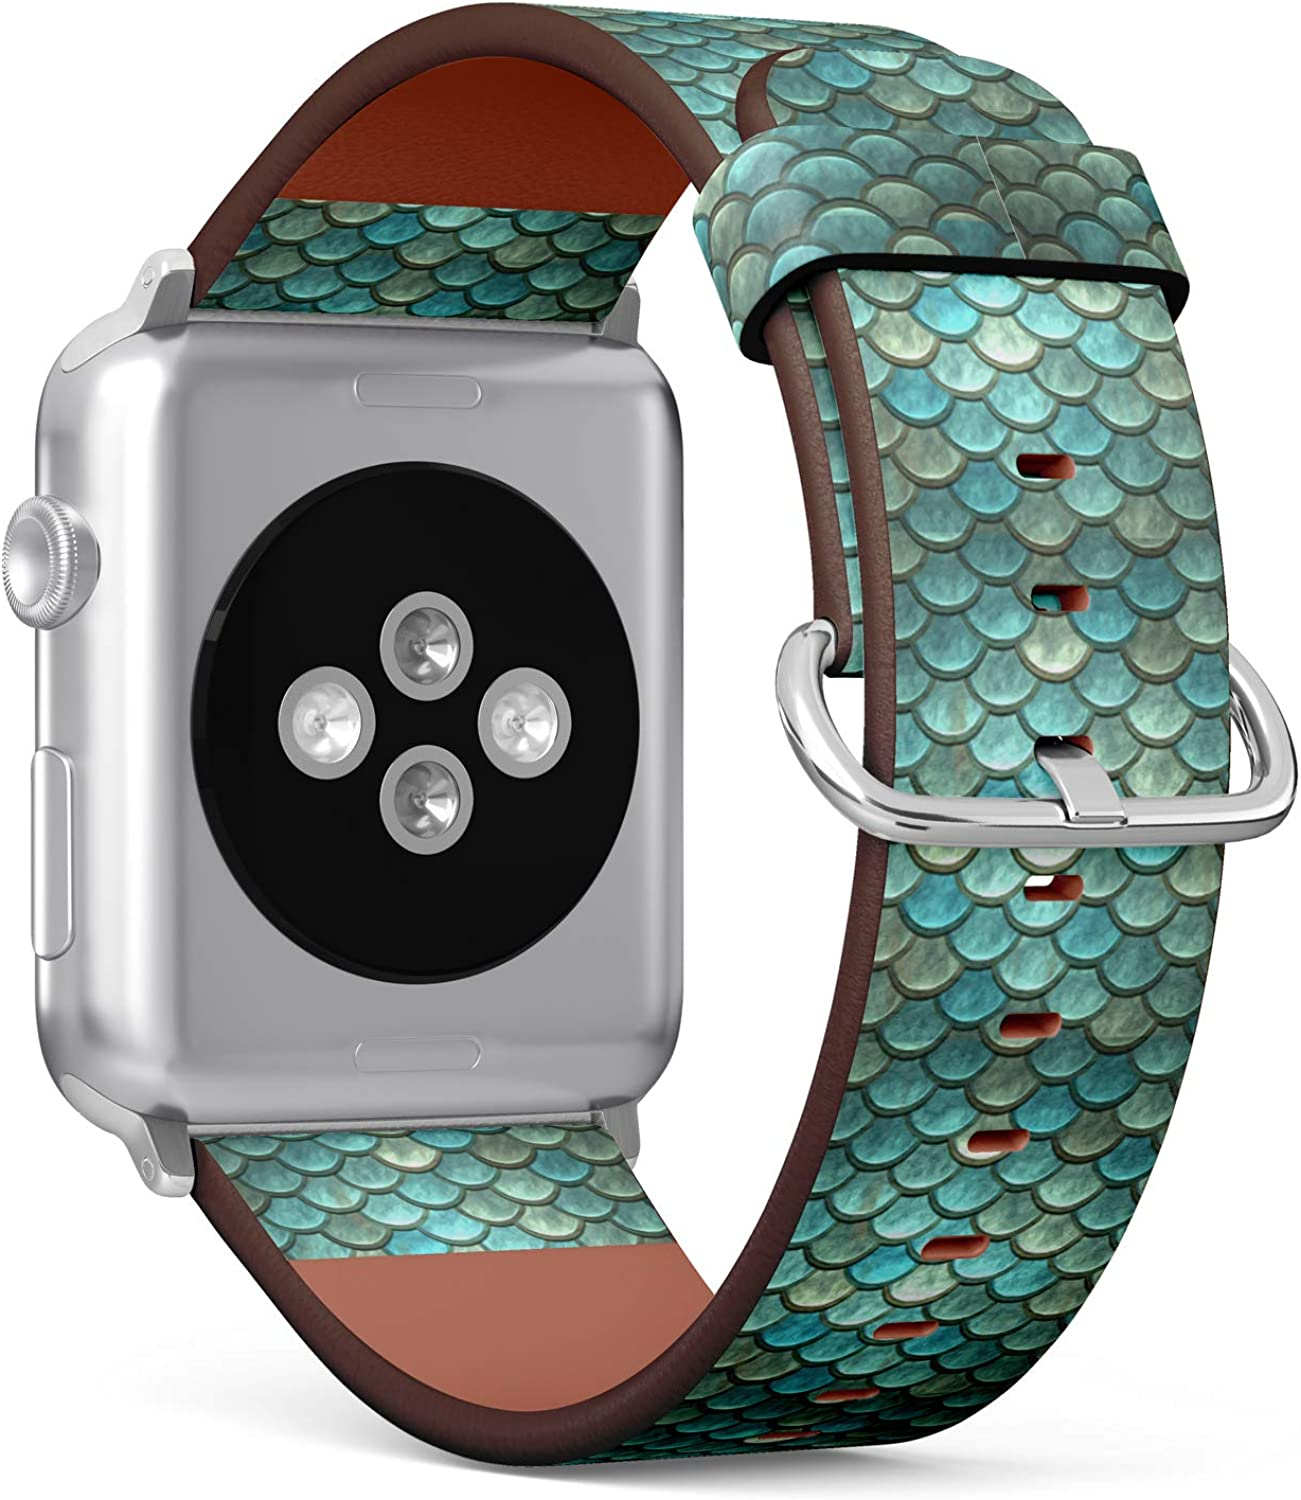 (Fantastic Mermaid Scale Pattern) Patterned Leather Wristband Strap for Apple Watch Series 4/3/2/1 gen,Replacement for iWatch 38mm / 40mm Bands